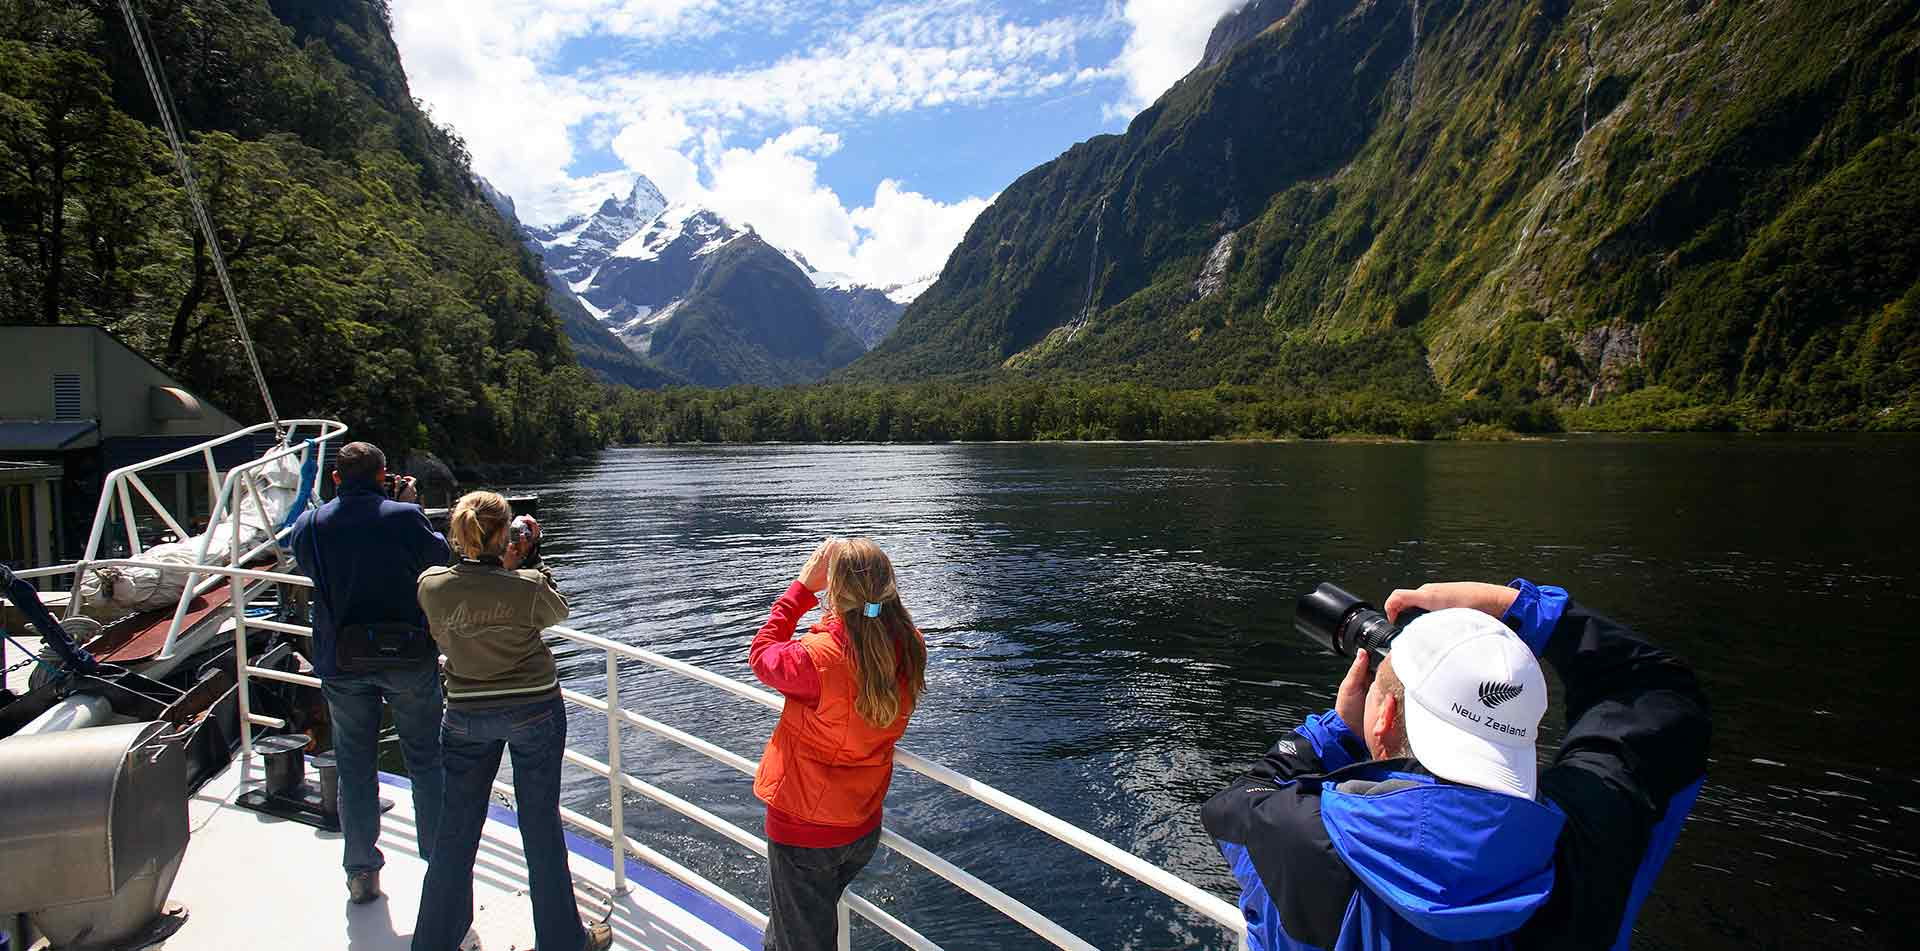 Oceania New Zealand South Island people enjoying cruise of Milford Sound - luxury vacation destinations